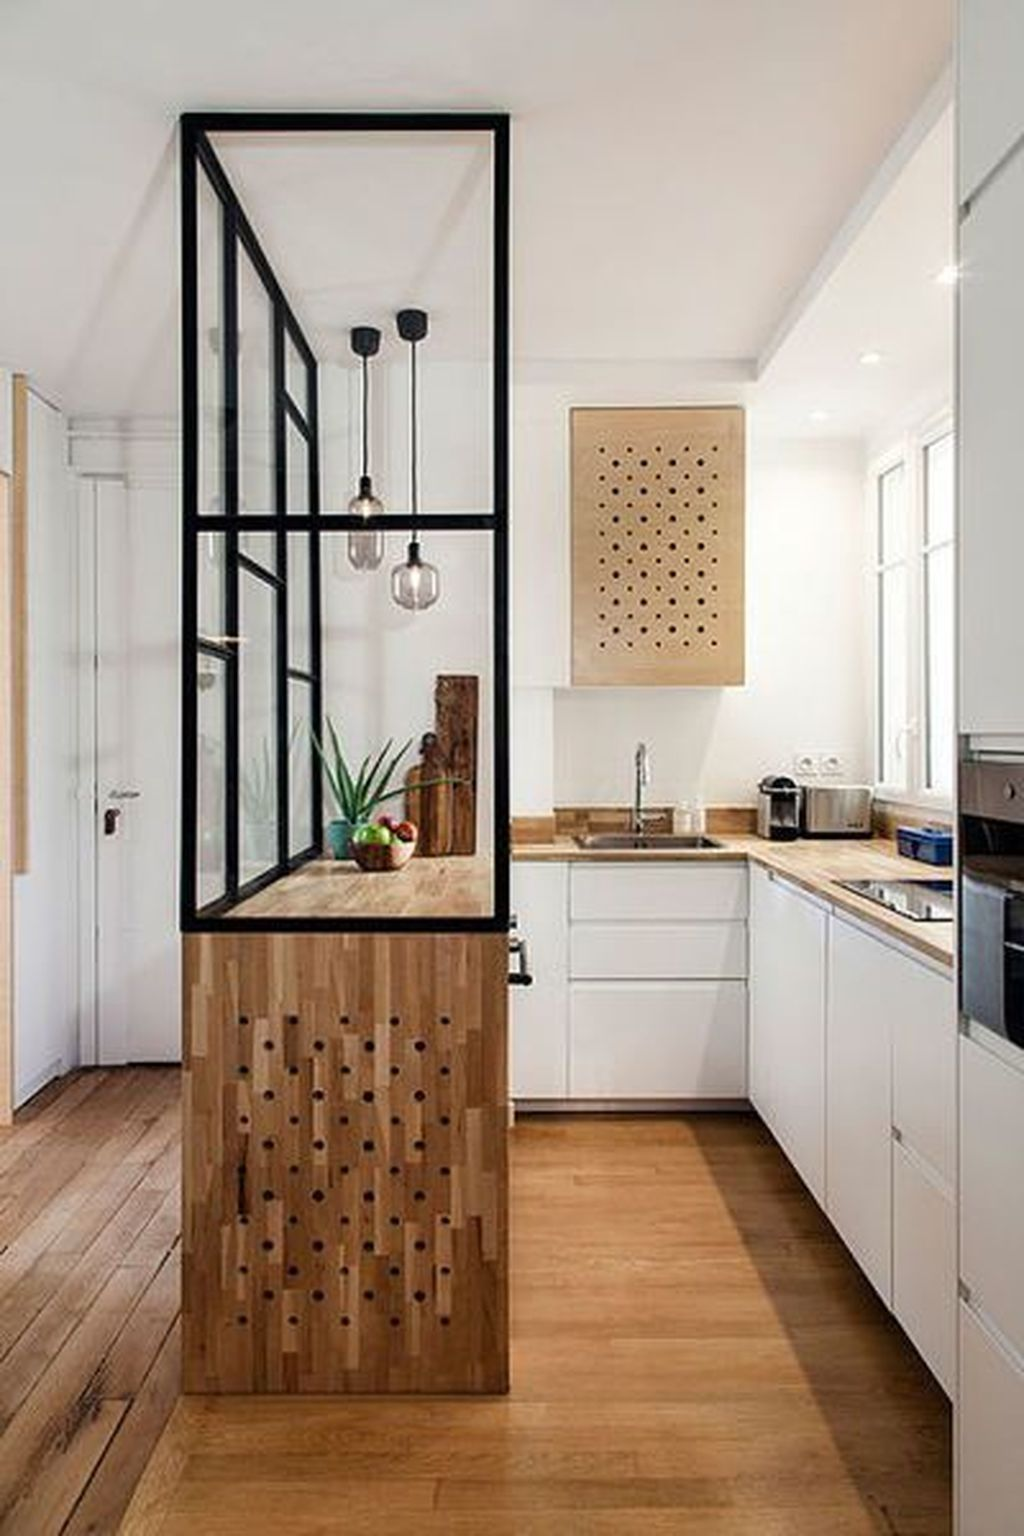 narrow kitchen, white bottom cabinet, white wall, wooden counter top, wooden cabinet, glass partition, pendant